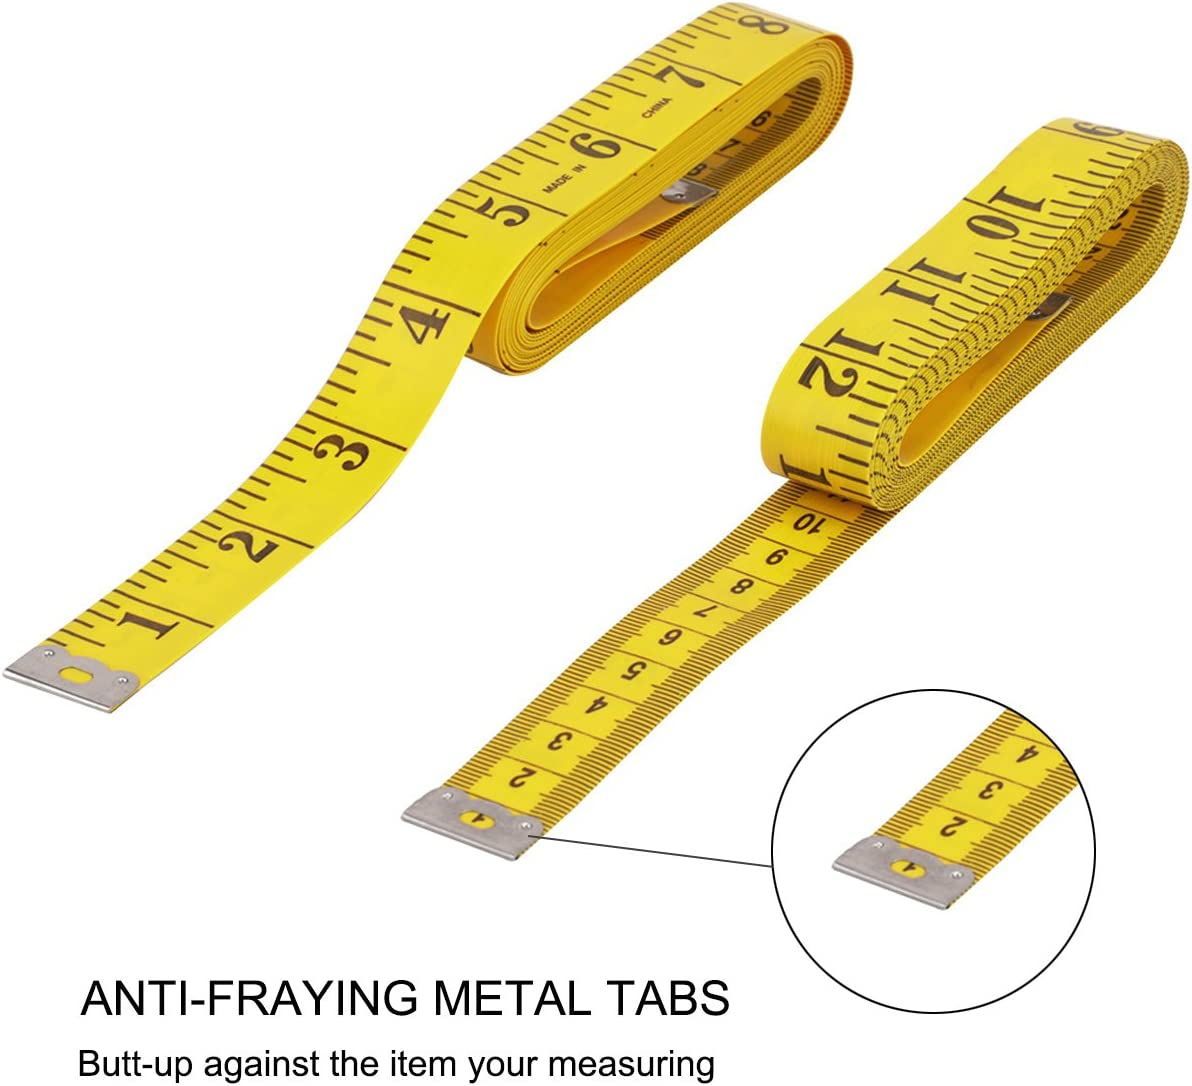 3M//10ft Soft Tape Measure for Sewing Tailor Cloth Flexible Ruler Weight Loss Measurement By Rely2016 3 PACK Soft Measuring Tape